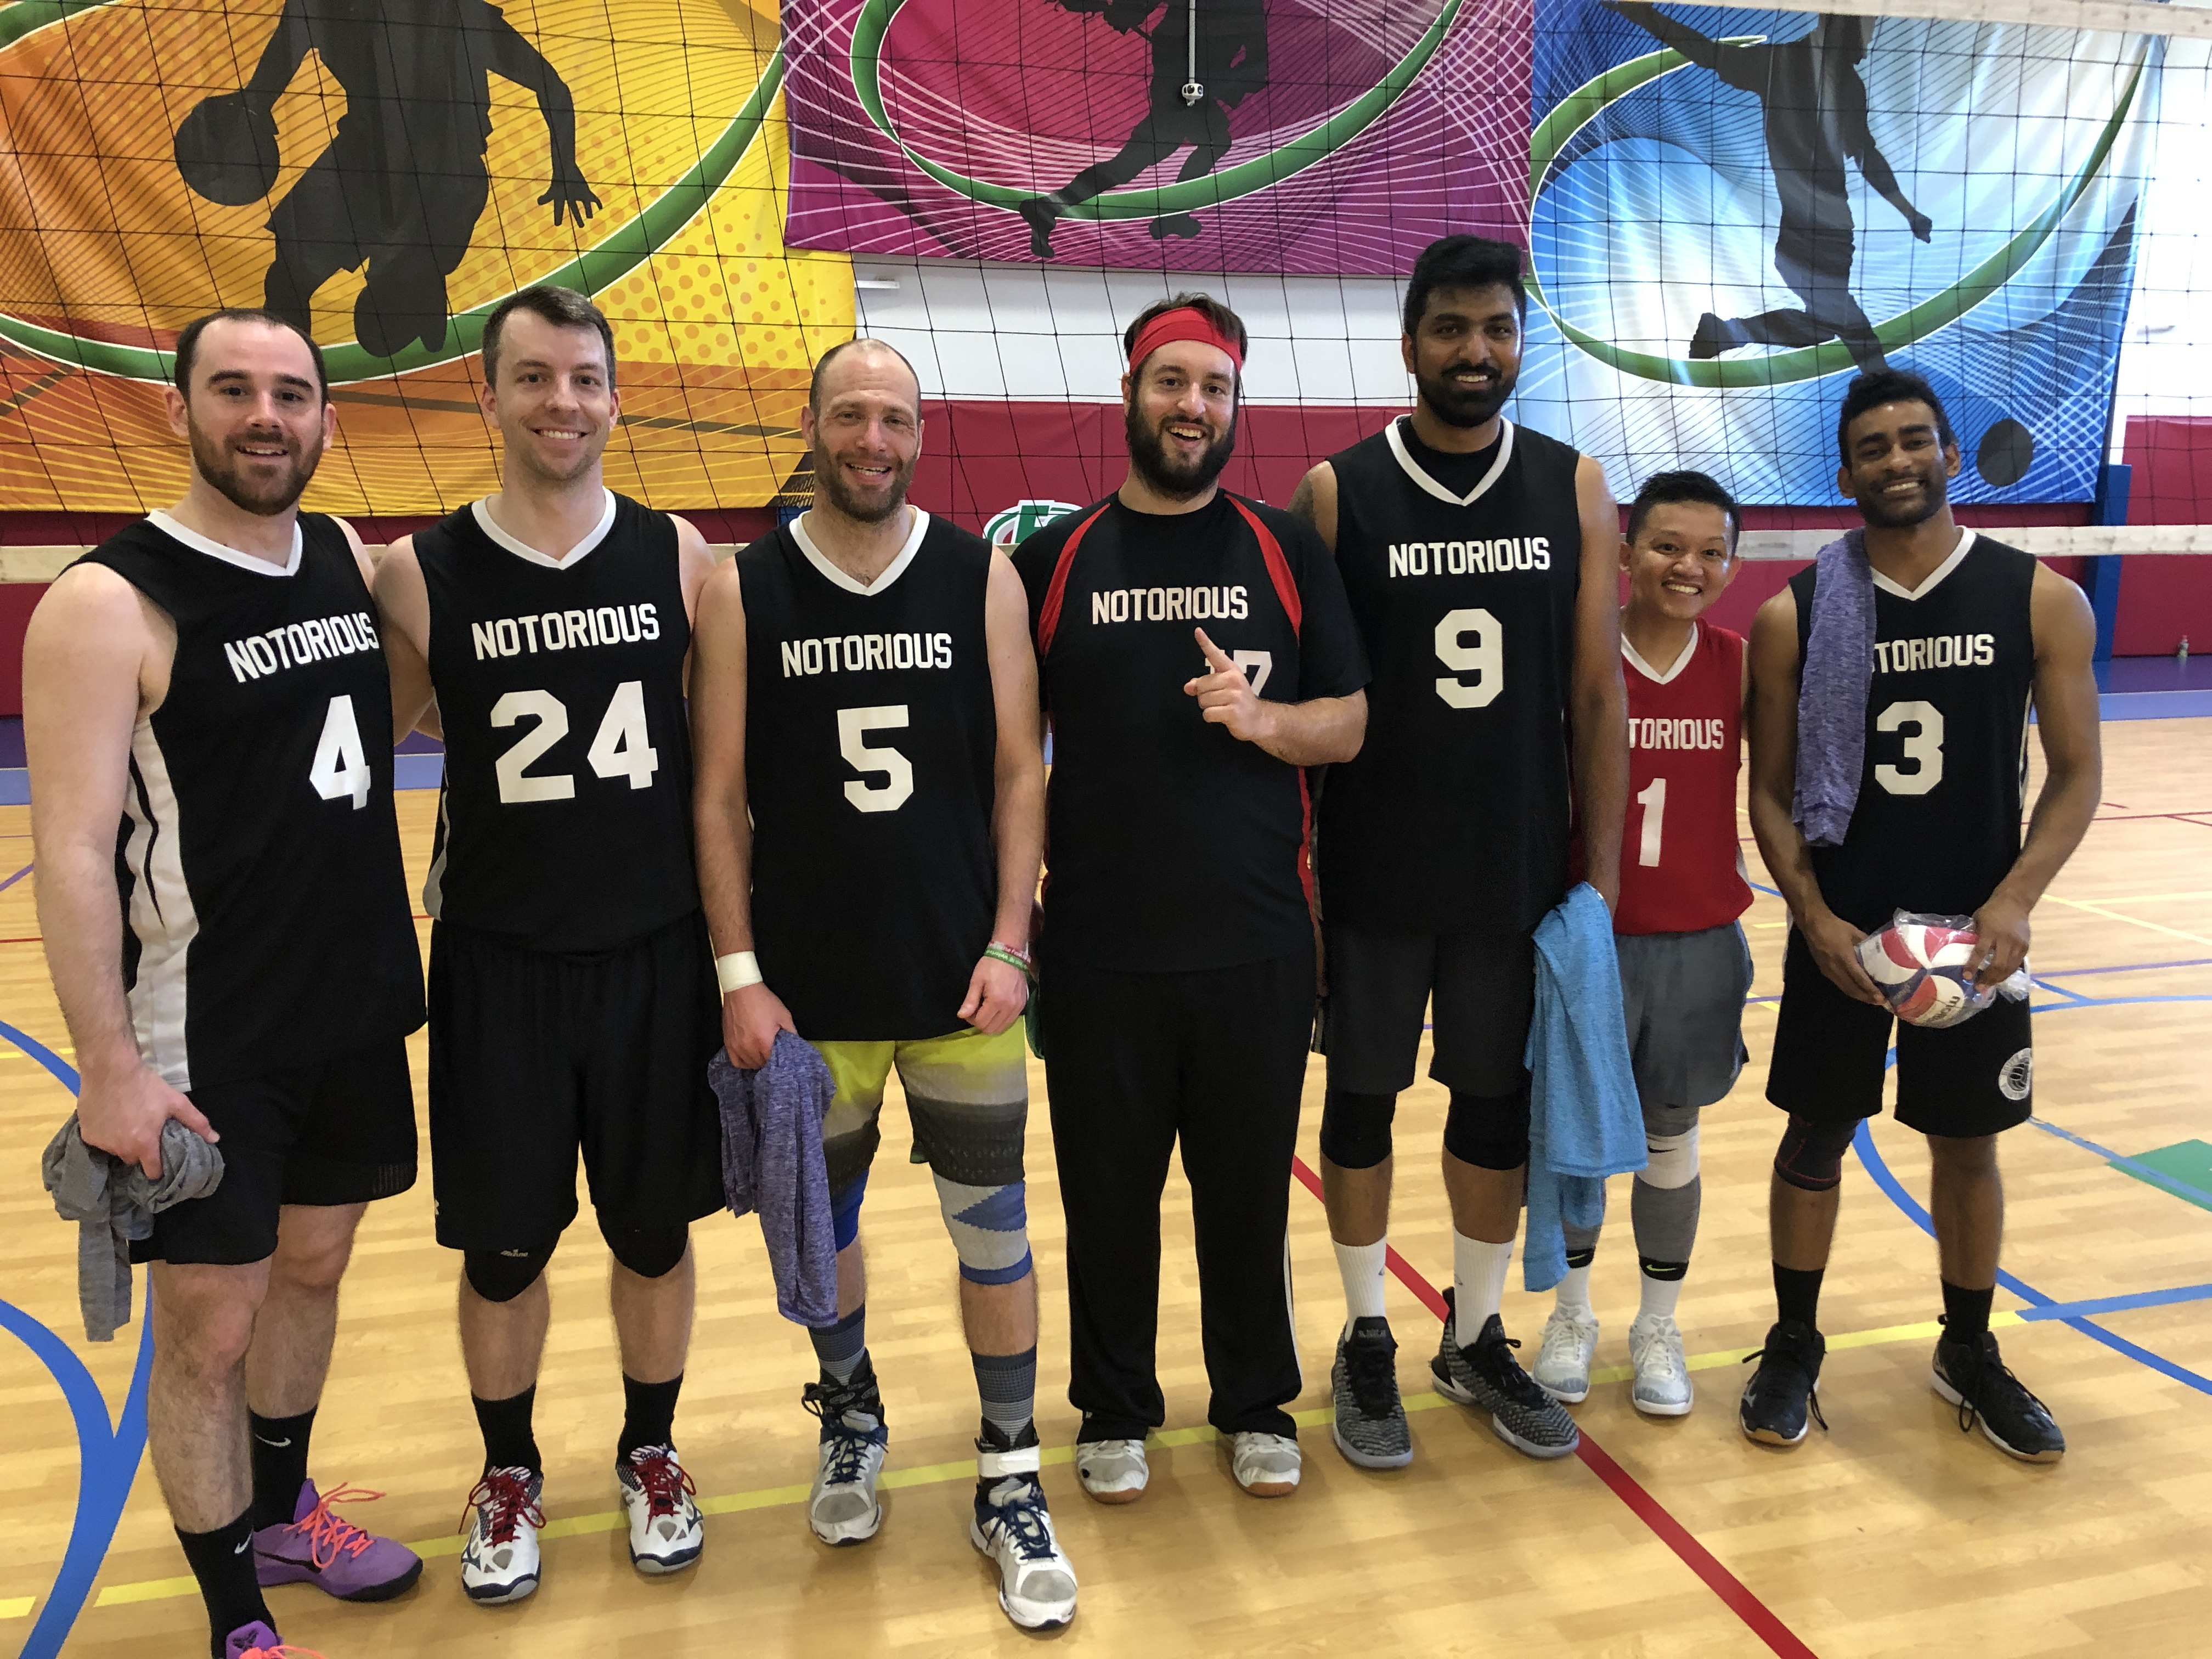 NOTORIOUS Win's the Men's B- Champs